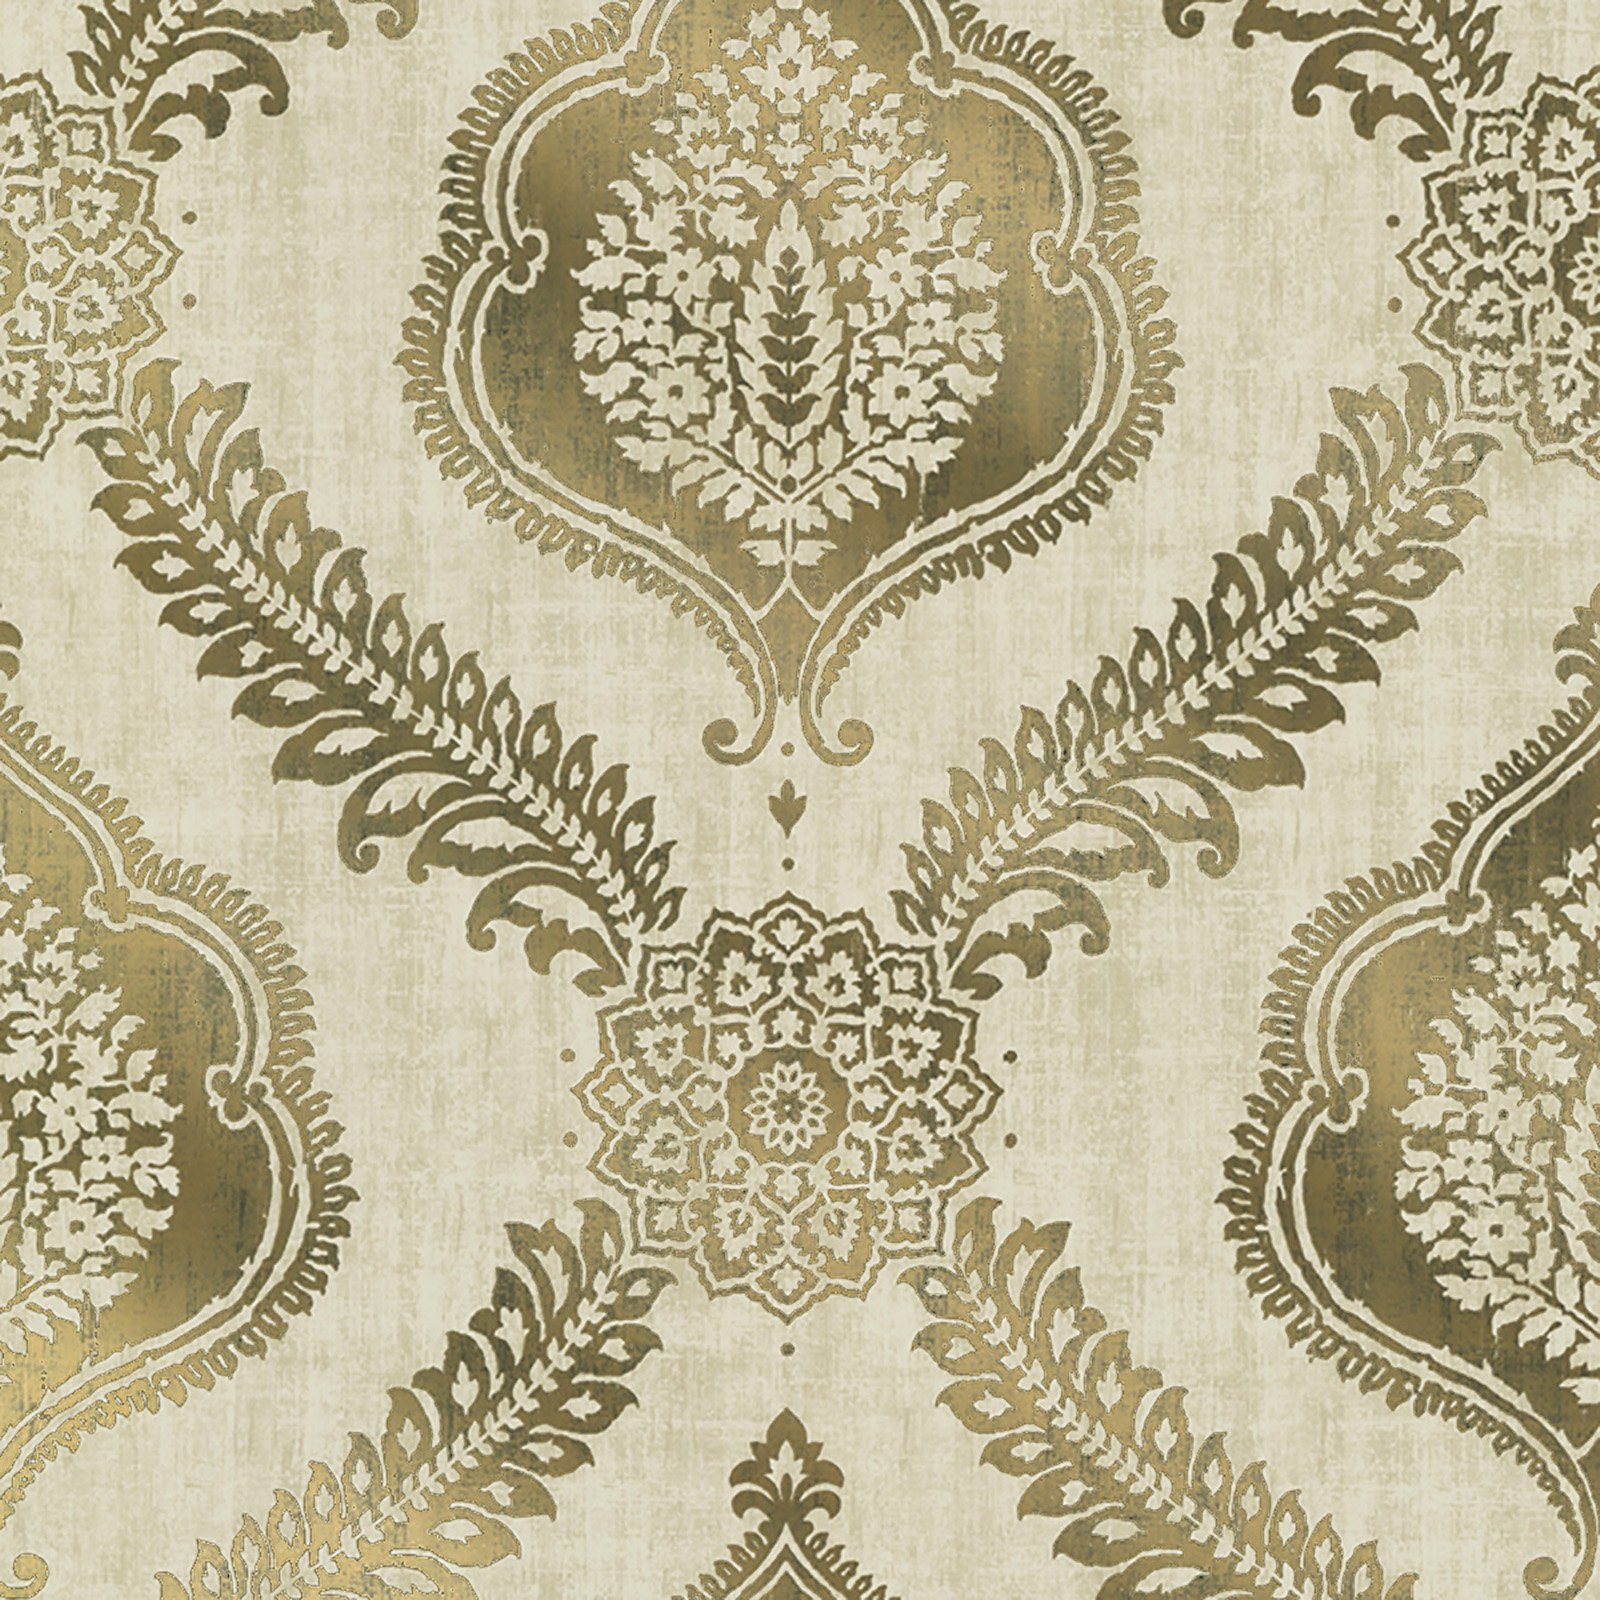 Kenneth James Zoraya Damask Wallpaper